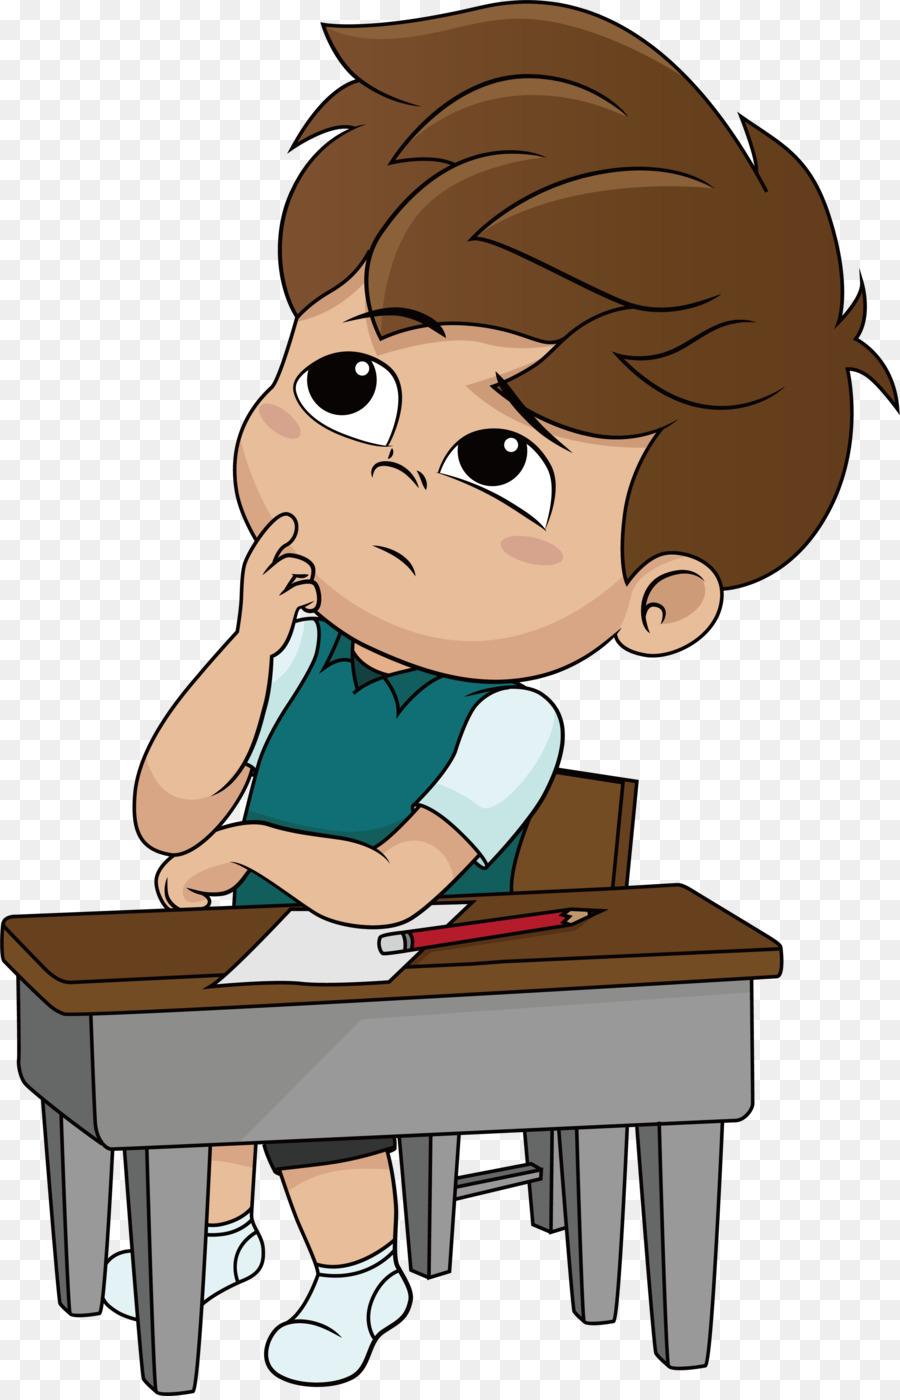 hight resolution of boy thinking clipart